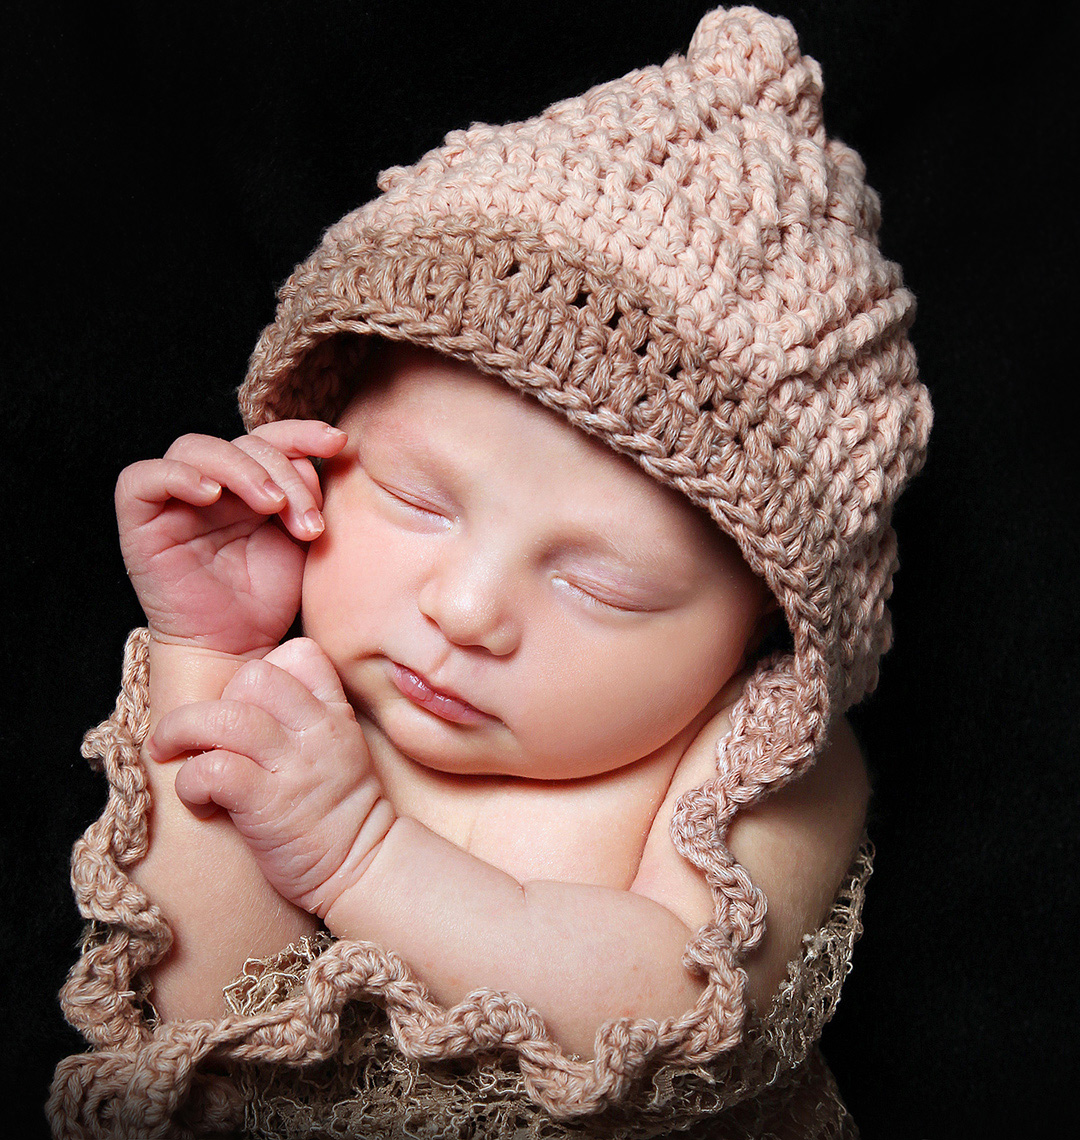 London, Ontario top baby and newborn photography studio